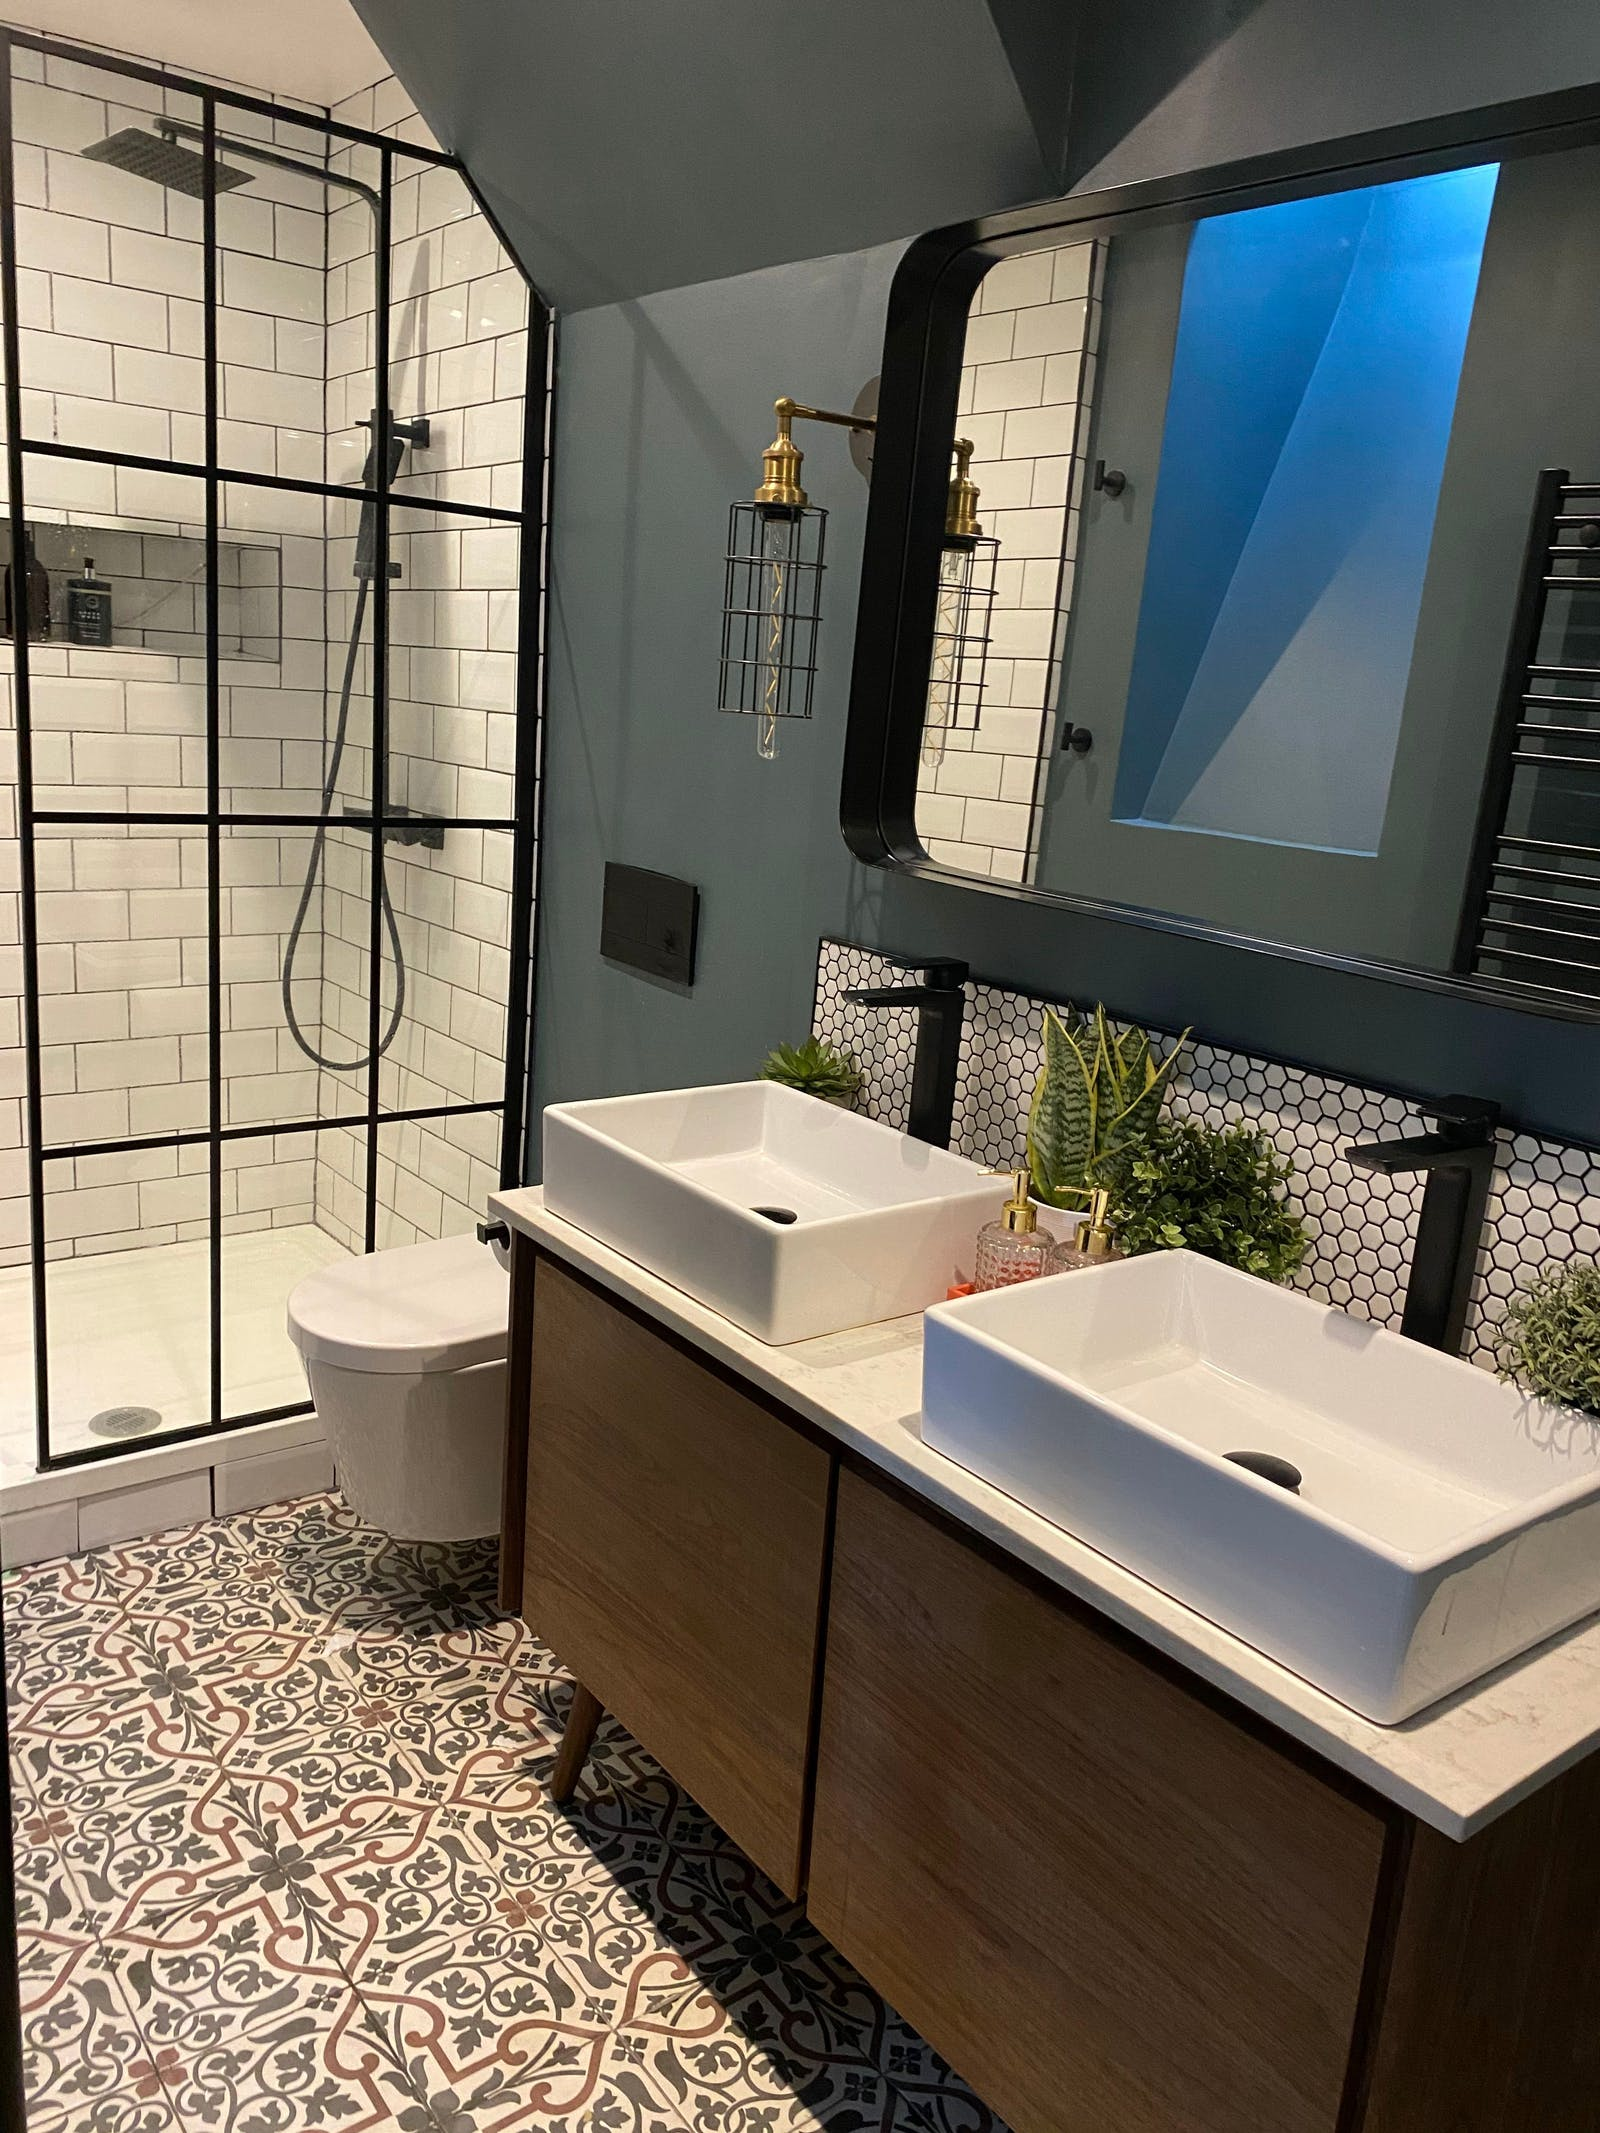 Dark blue bathroom with an assortment of tiles and double sinks